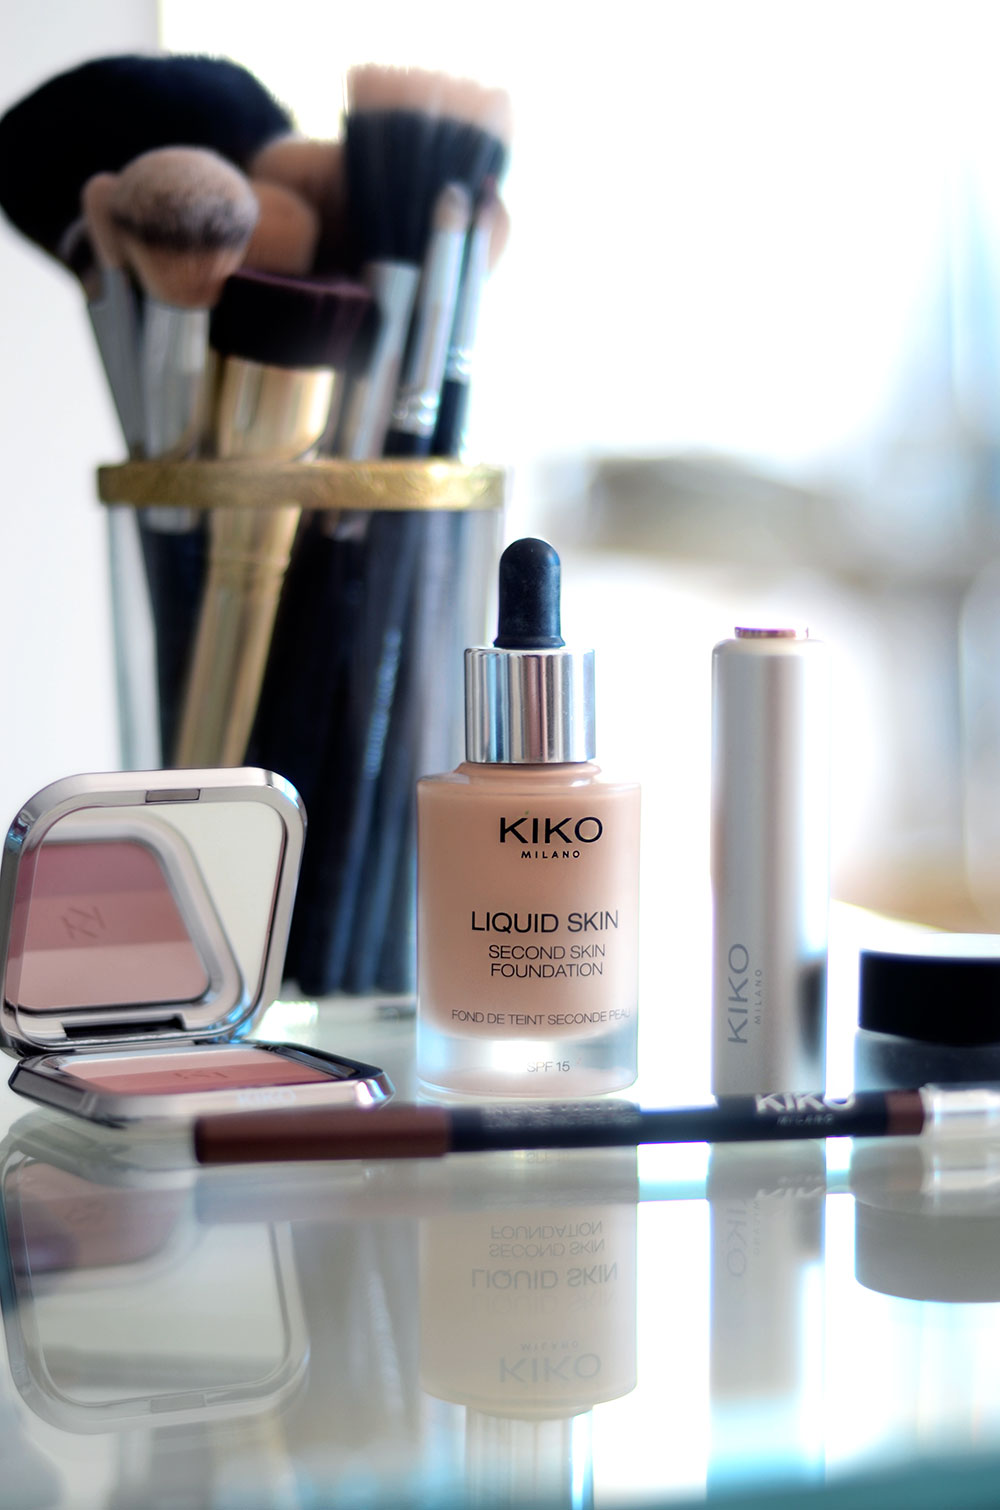 Kiko-Five-to-try-Zoe-Newlove-Beauty-blogger-recommendations